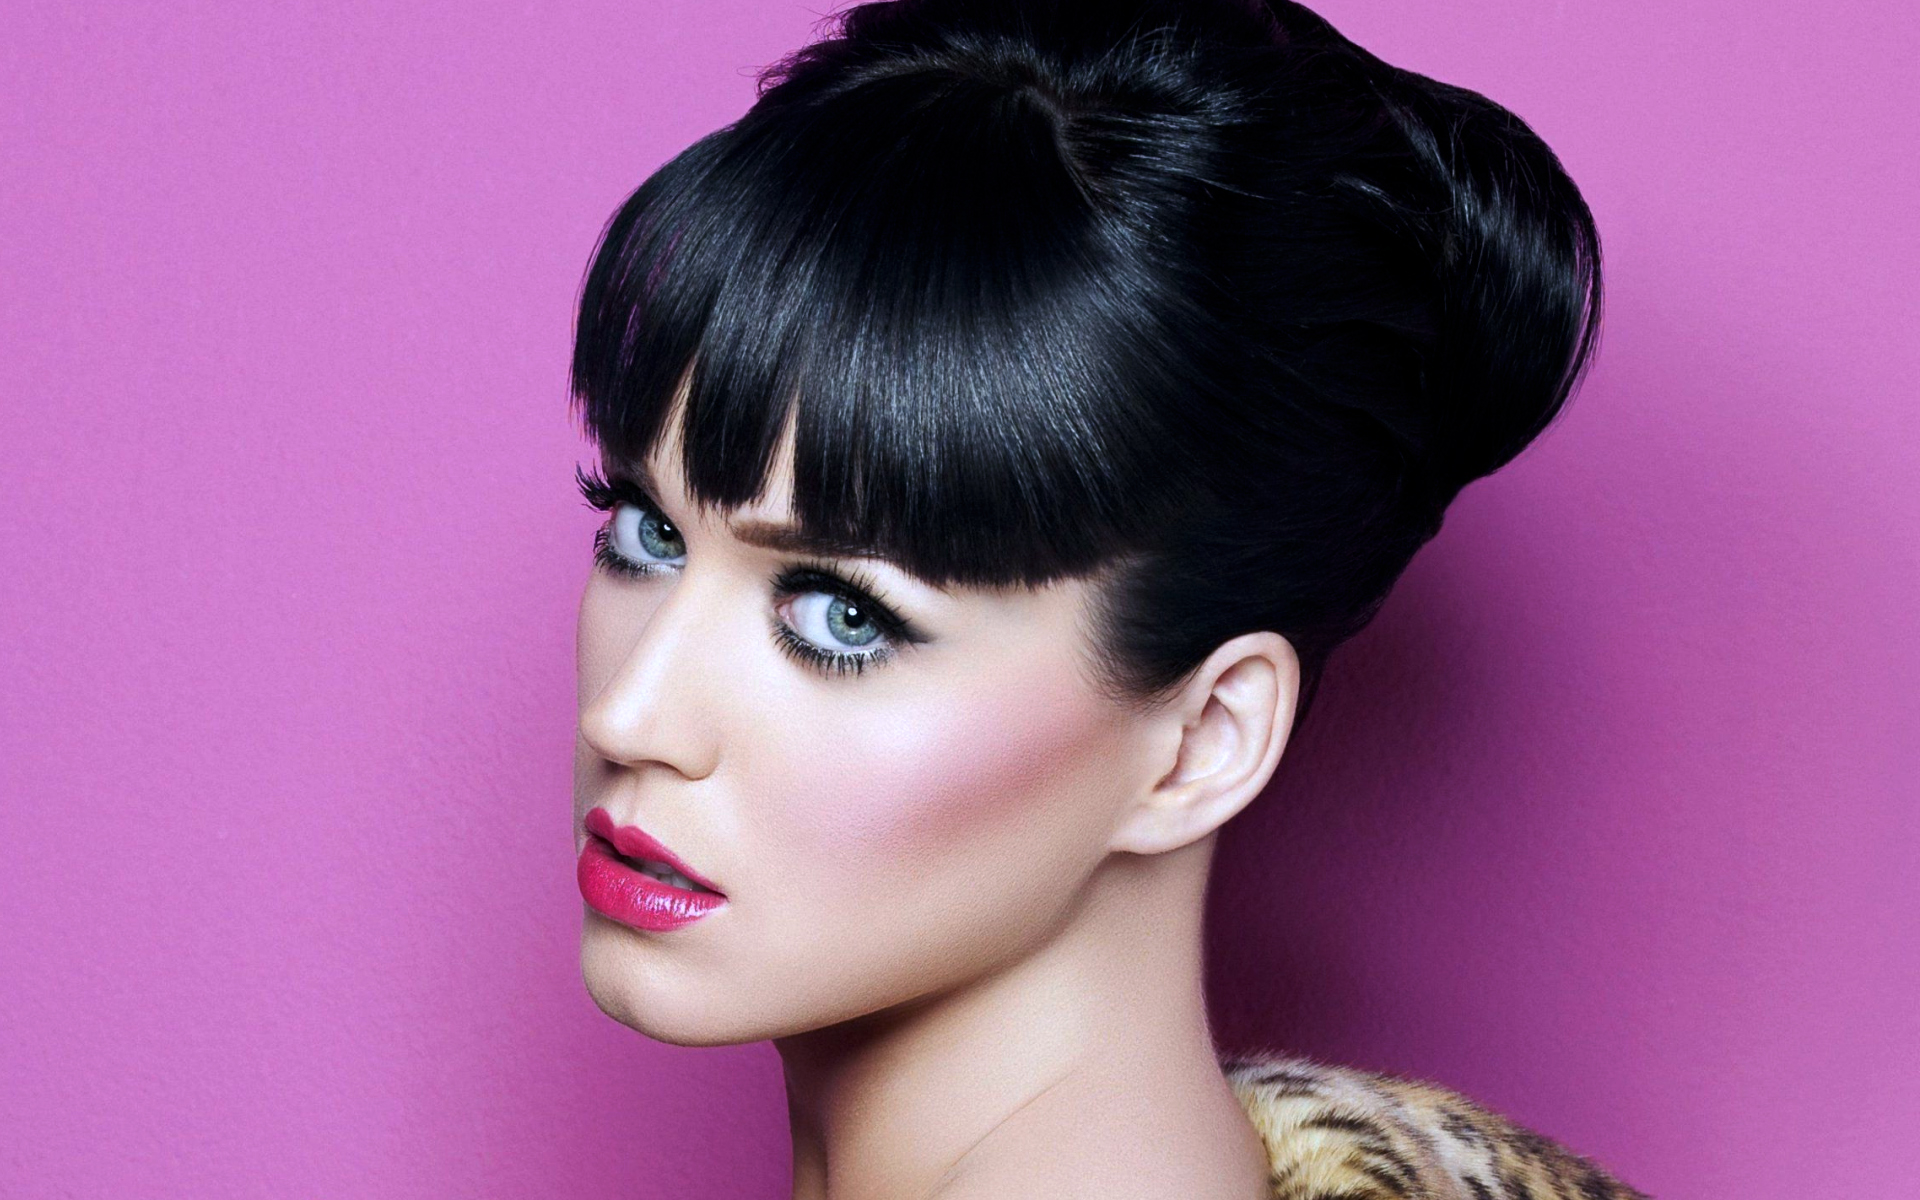 katy_perry_1920_1200_aug042009